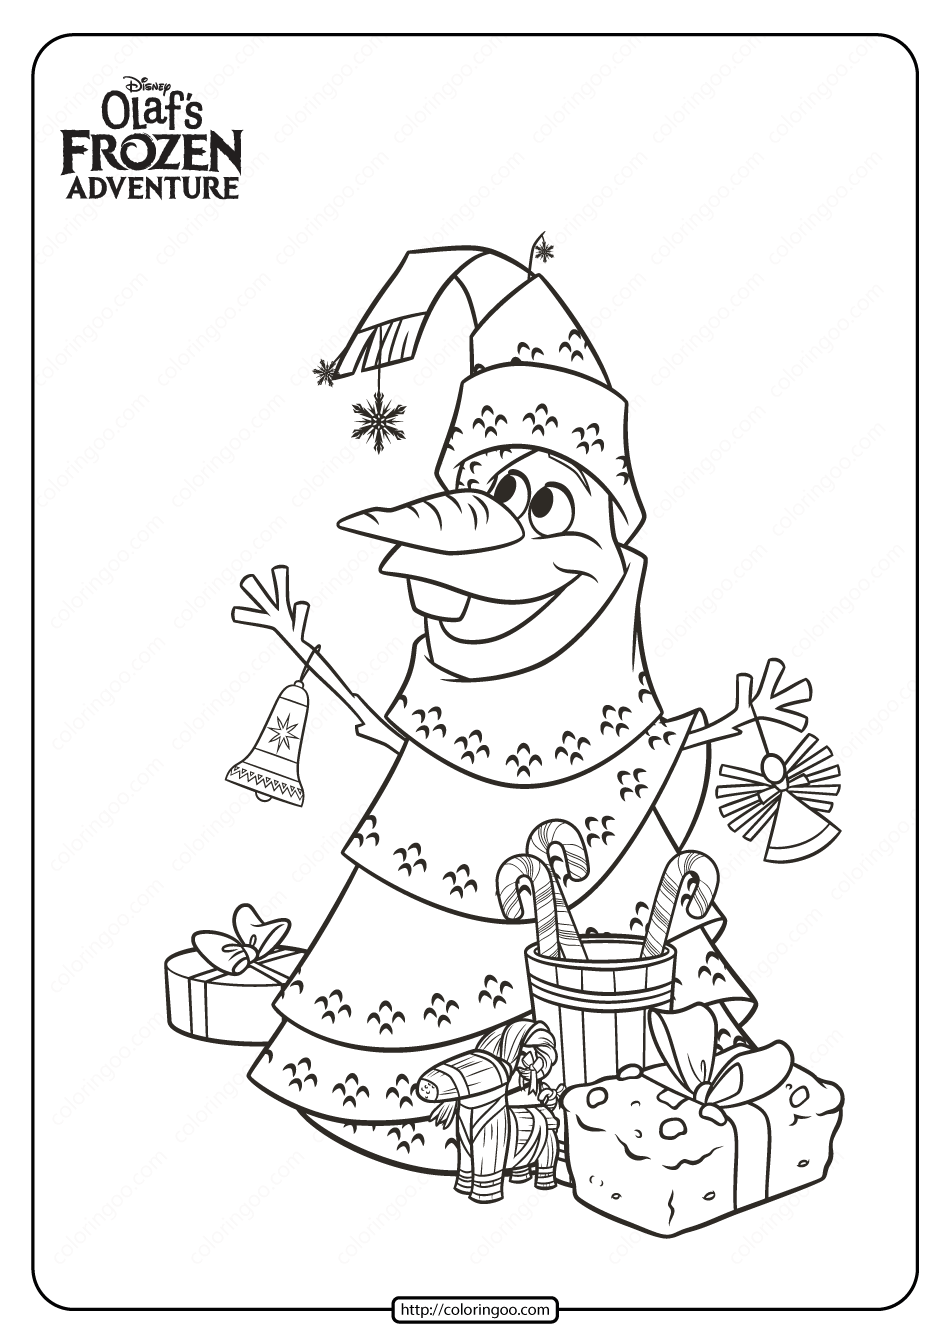 Disney Olaf S Frozen Adventure Coloring Pages 01 In 2020 Disney Coloring Pages Coloring Pages Disney Olaf